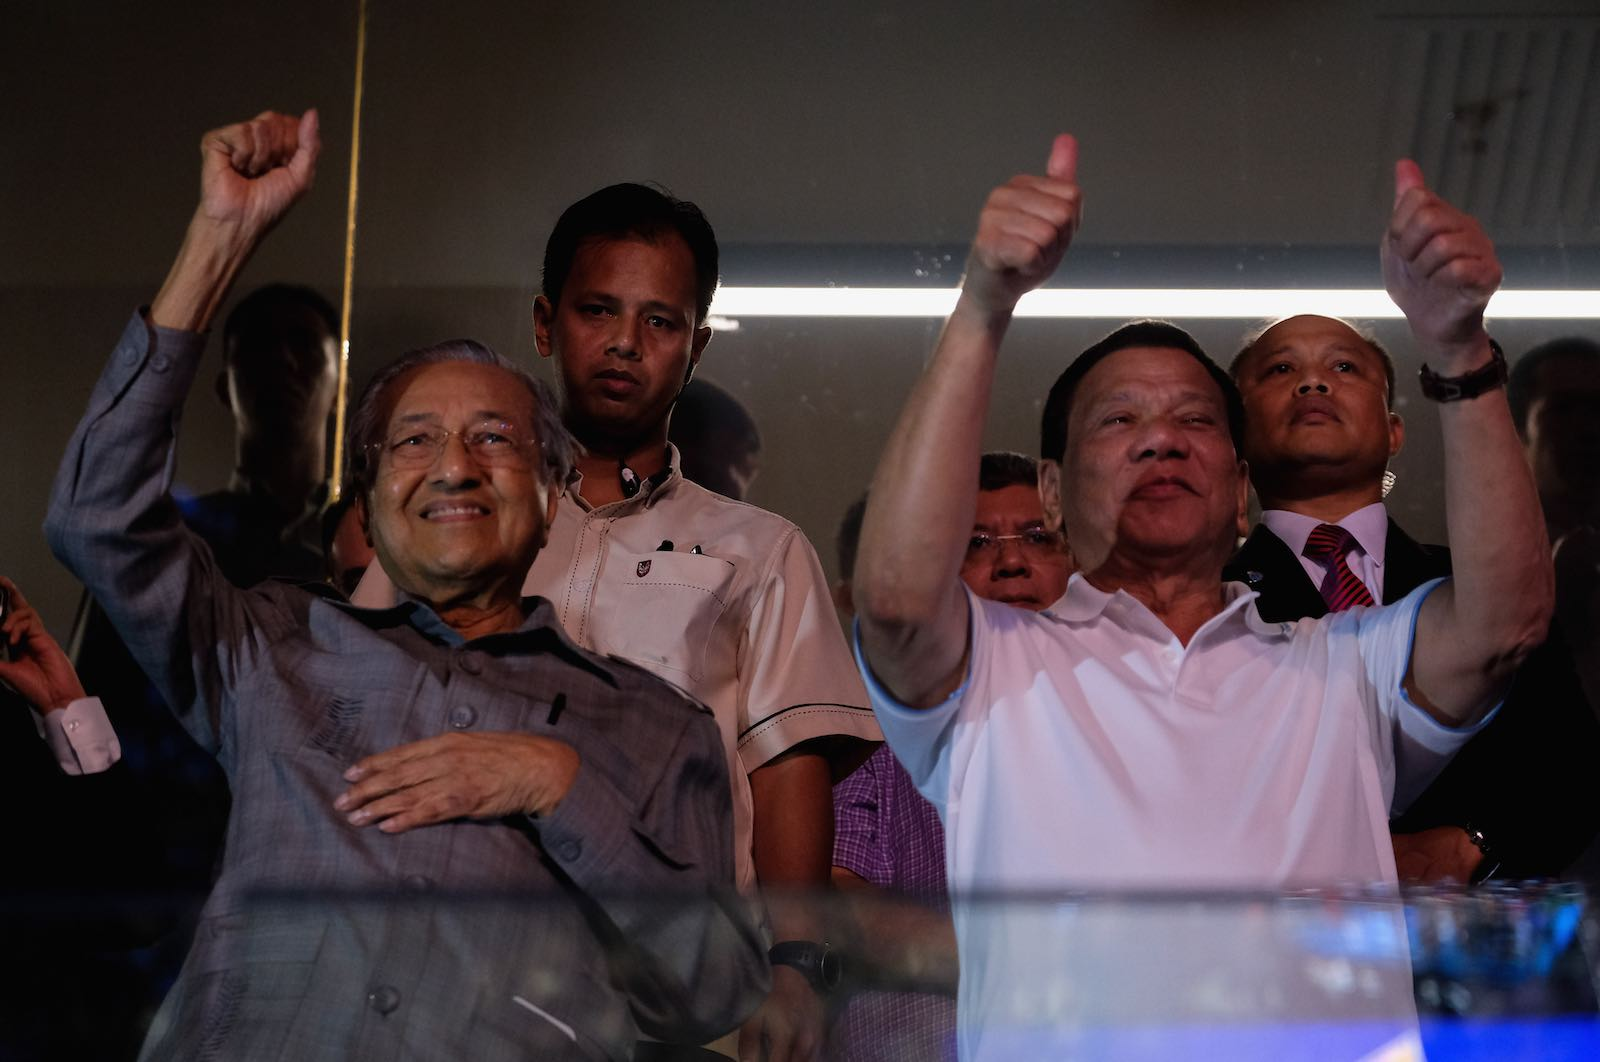 Thumb's up: Malaysia's Mahathir Mohamed and the Philippines' Rodrigo Duterte cheer in a boxing match in 2018 (Photo: Mohd Samsul Mohd Said/Getty)